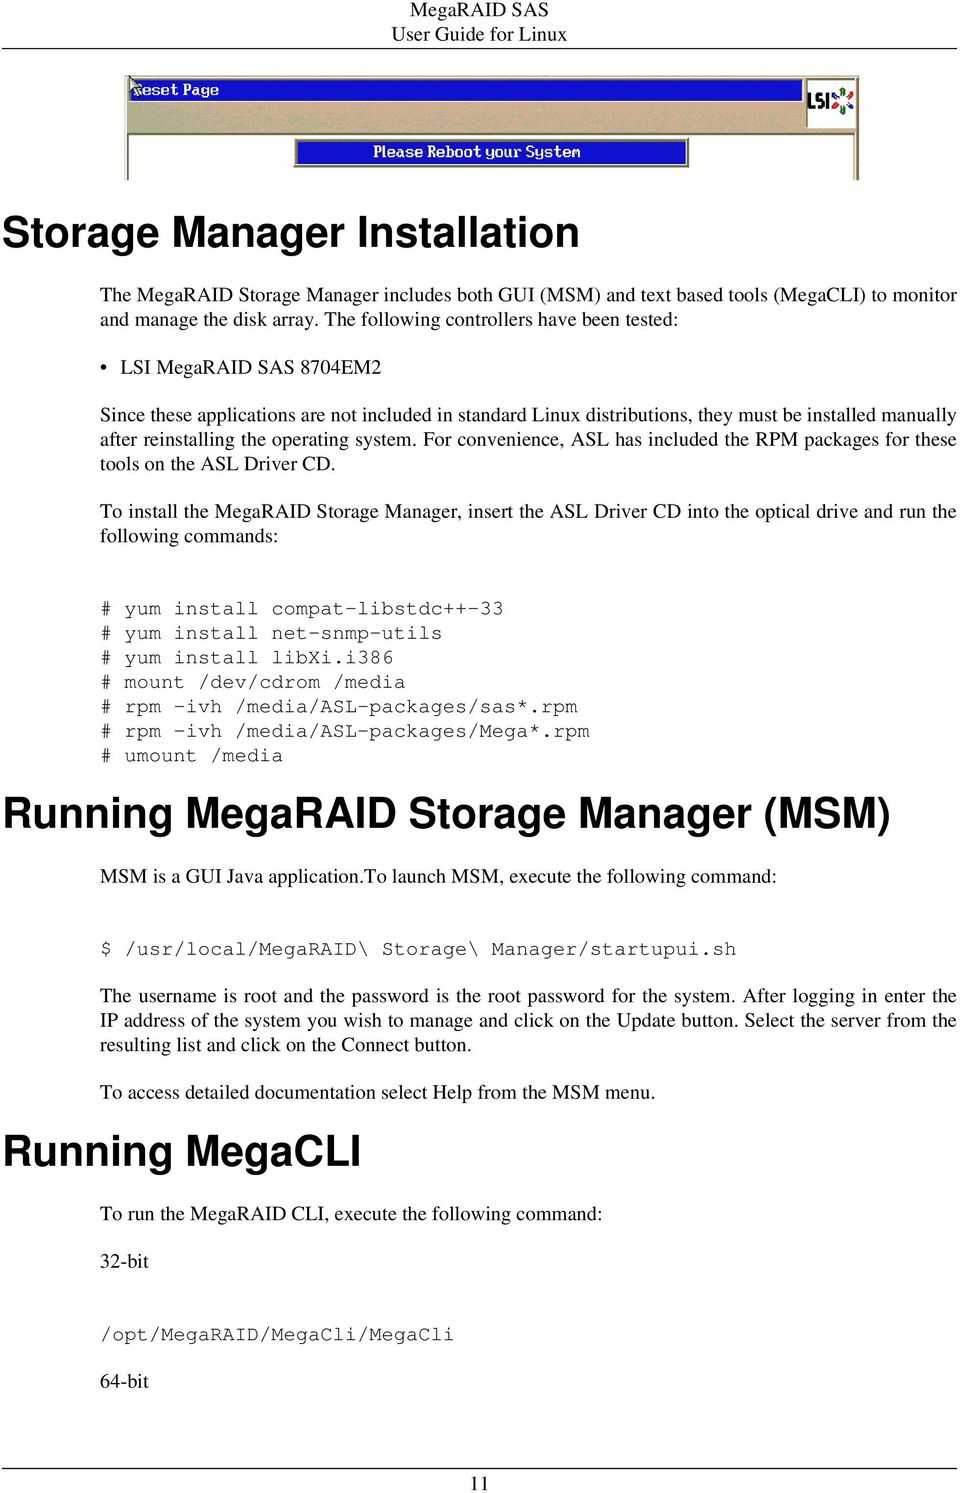 MegaRAID SAS User Guide for Linux - PDF